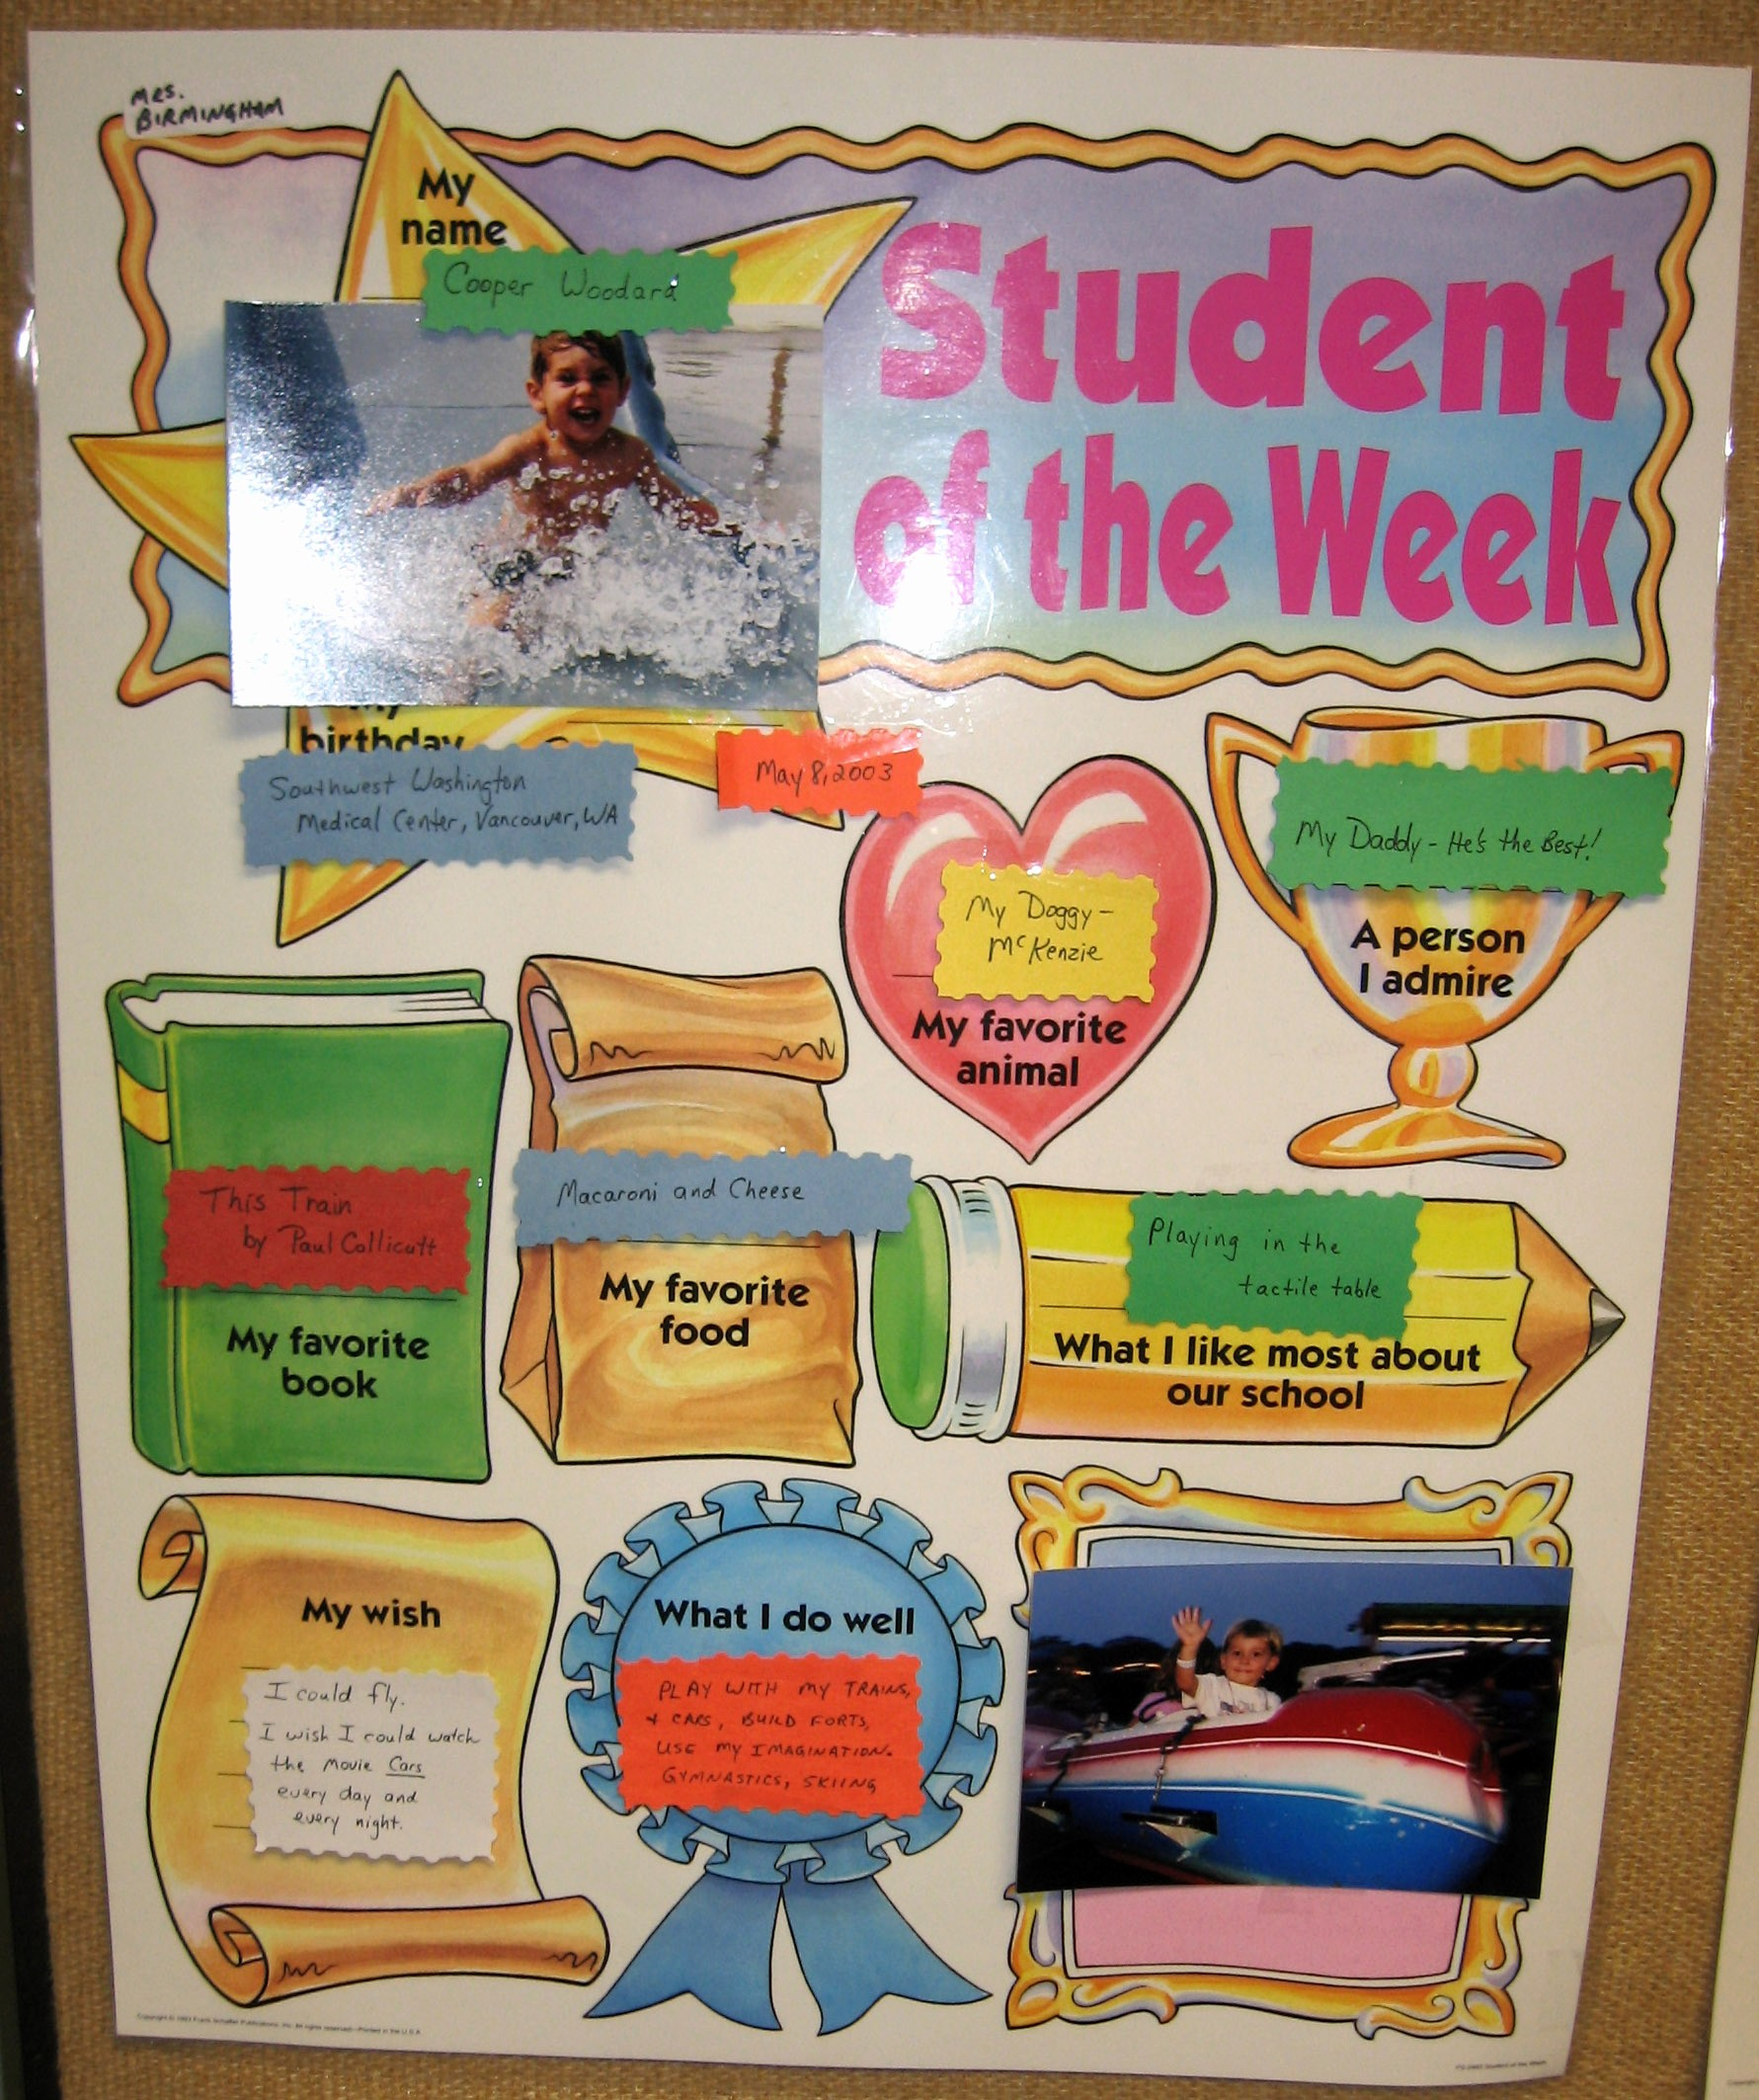 Student Of the Month Banner Elegant Cooper Woodard Photos 2007 11 March